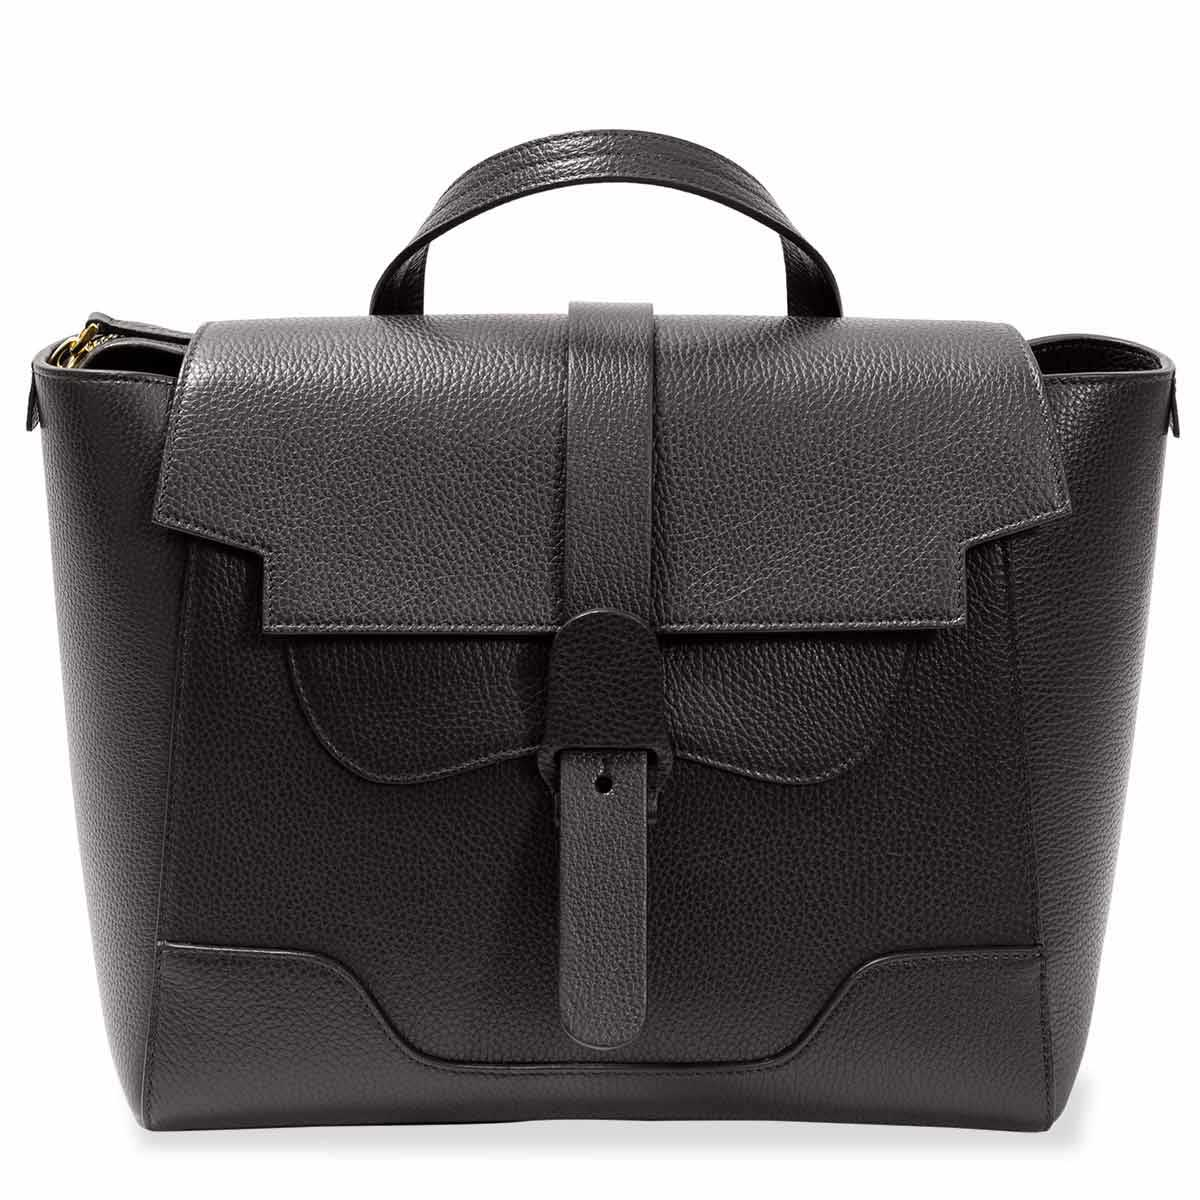 SENREVE Maestra Bag in Dolce Charcoal